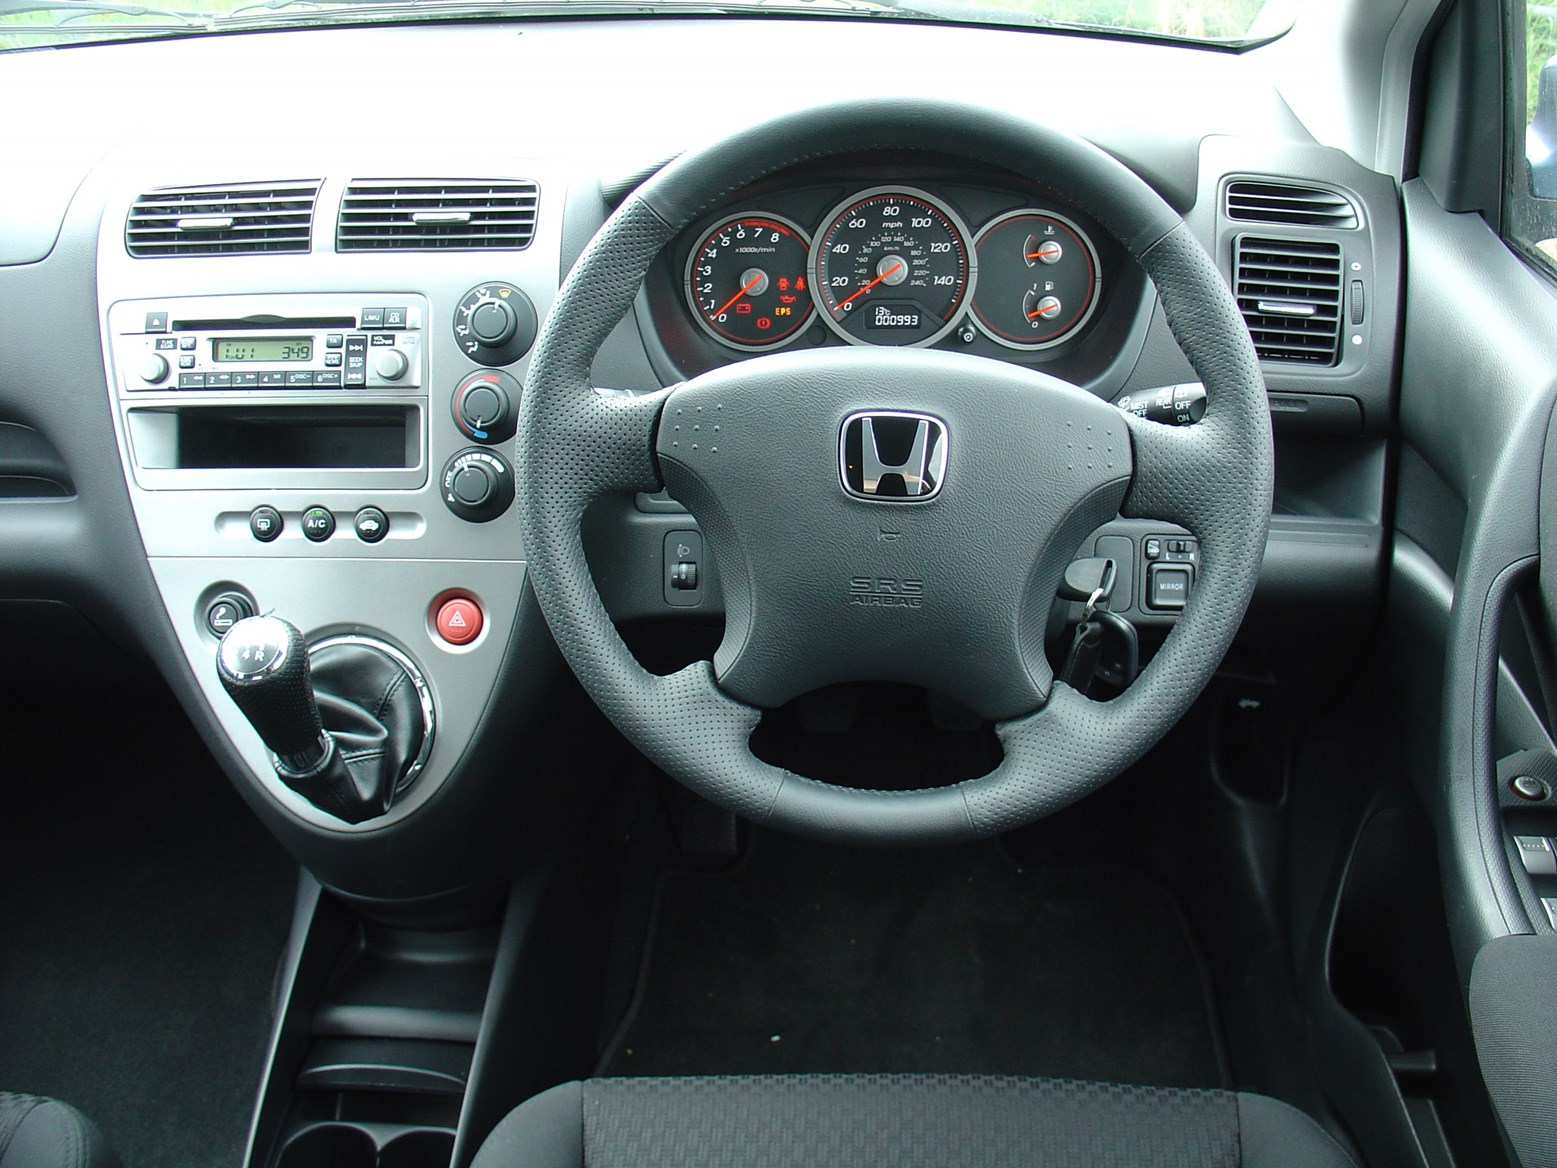 Honda Civic Hatchback 2000 2005 Features Equipment And Accessories Parkers